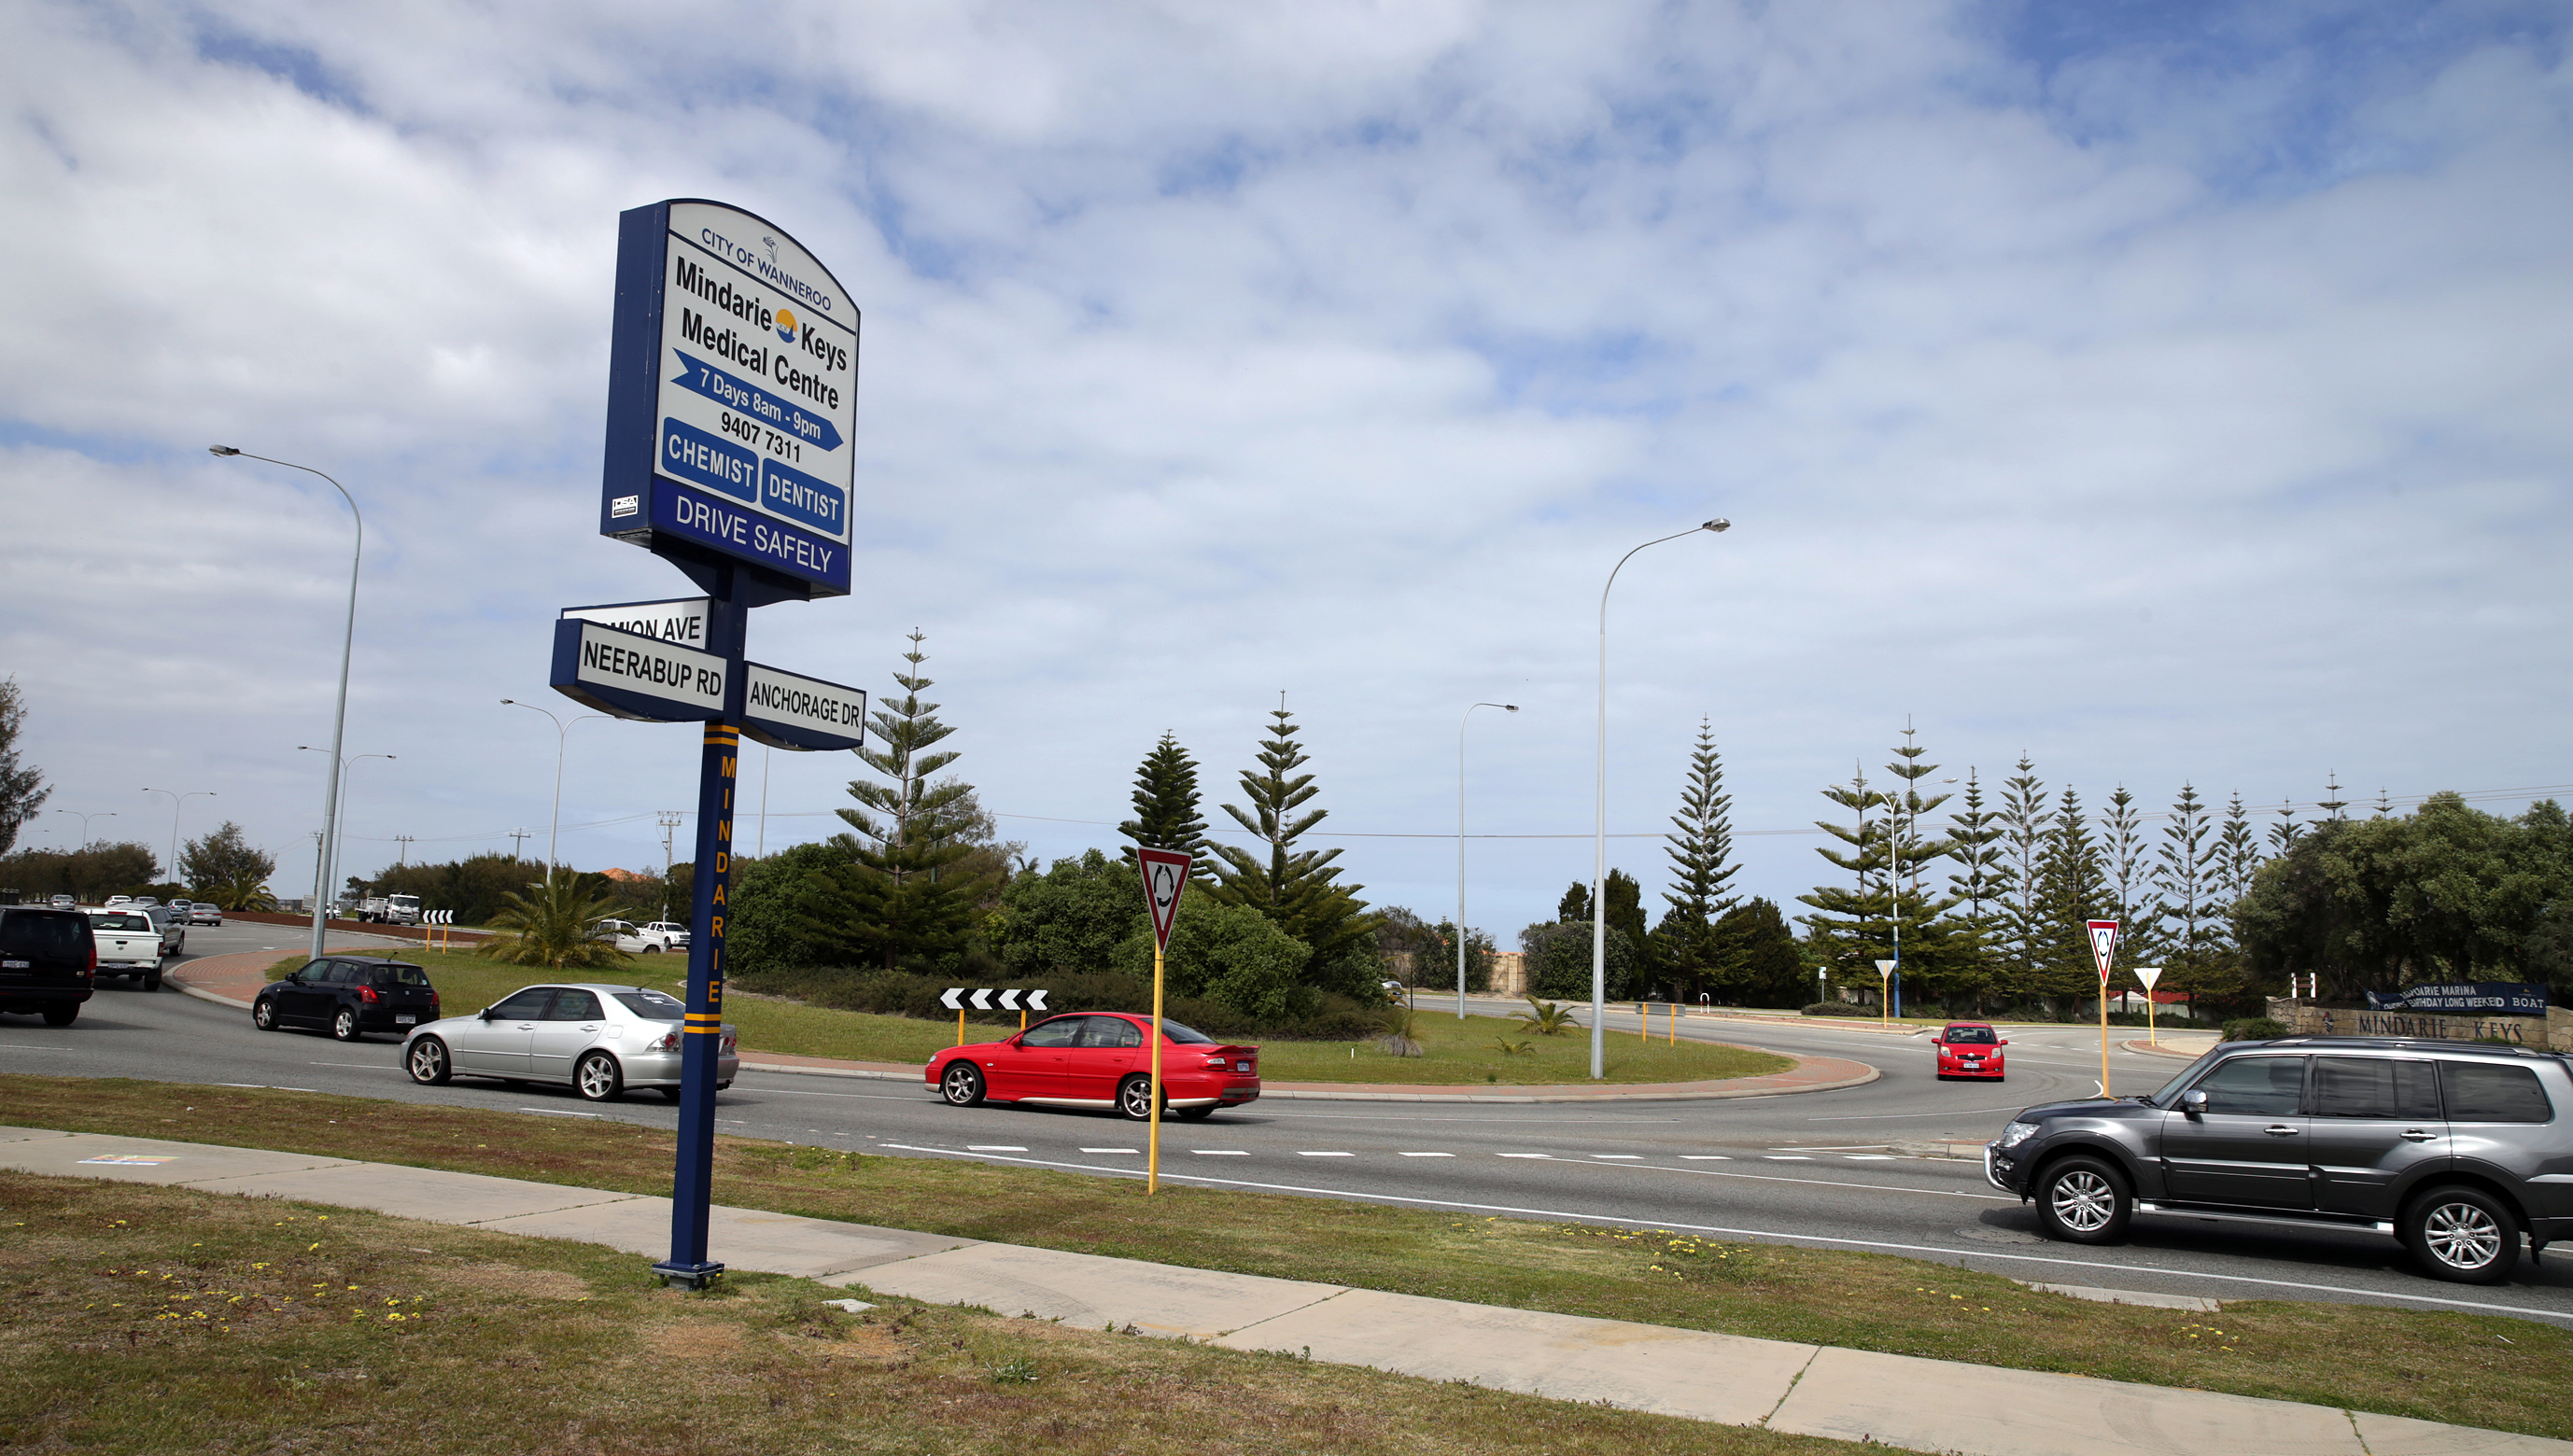 The City of Wanneroo will receive $800,000 from the Federal Government to add a slip lane from Marmion Avenue into Neerabup Road.